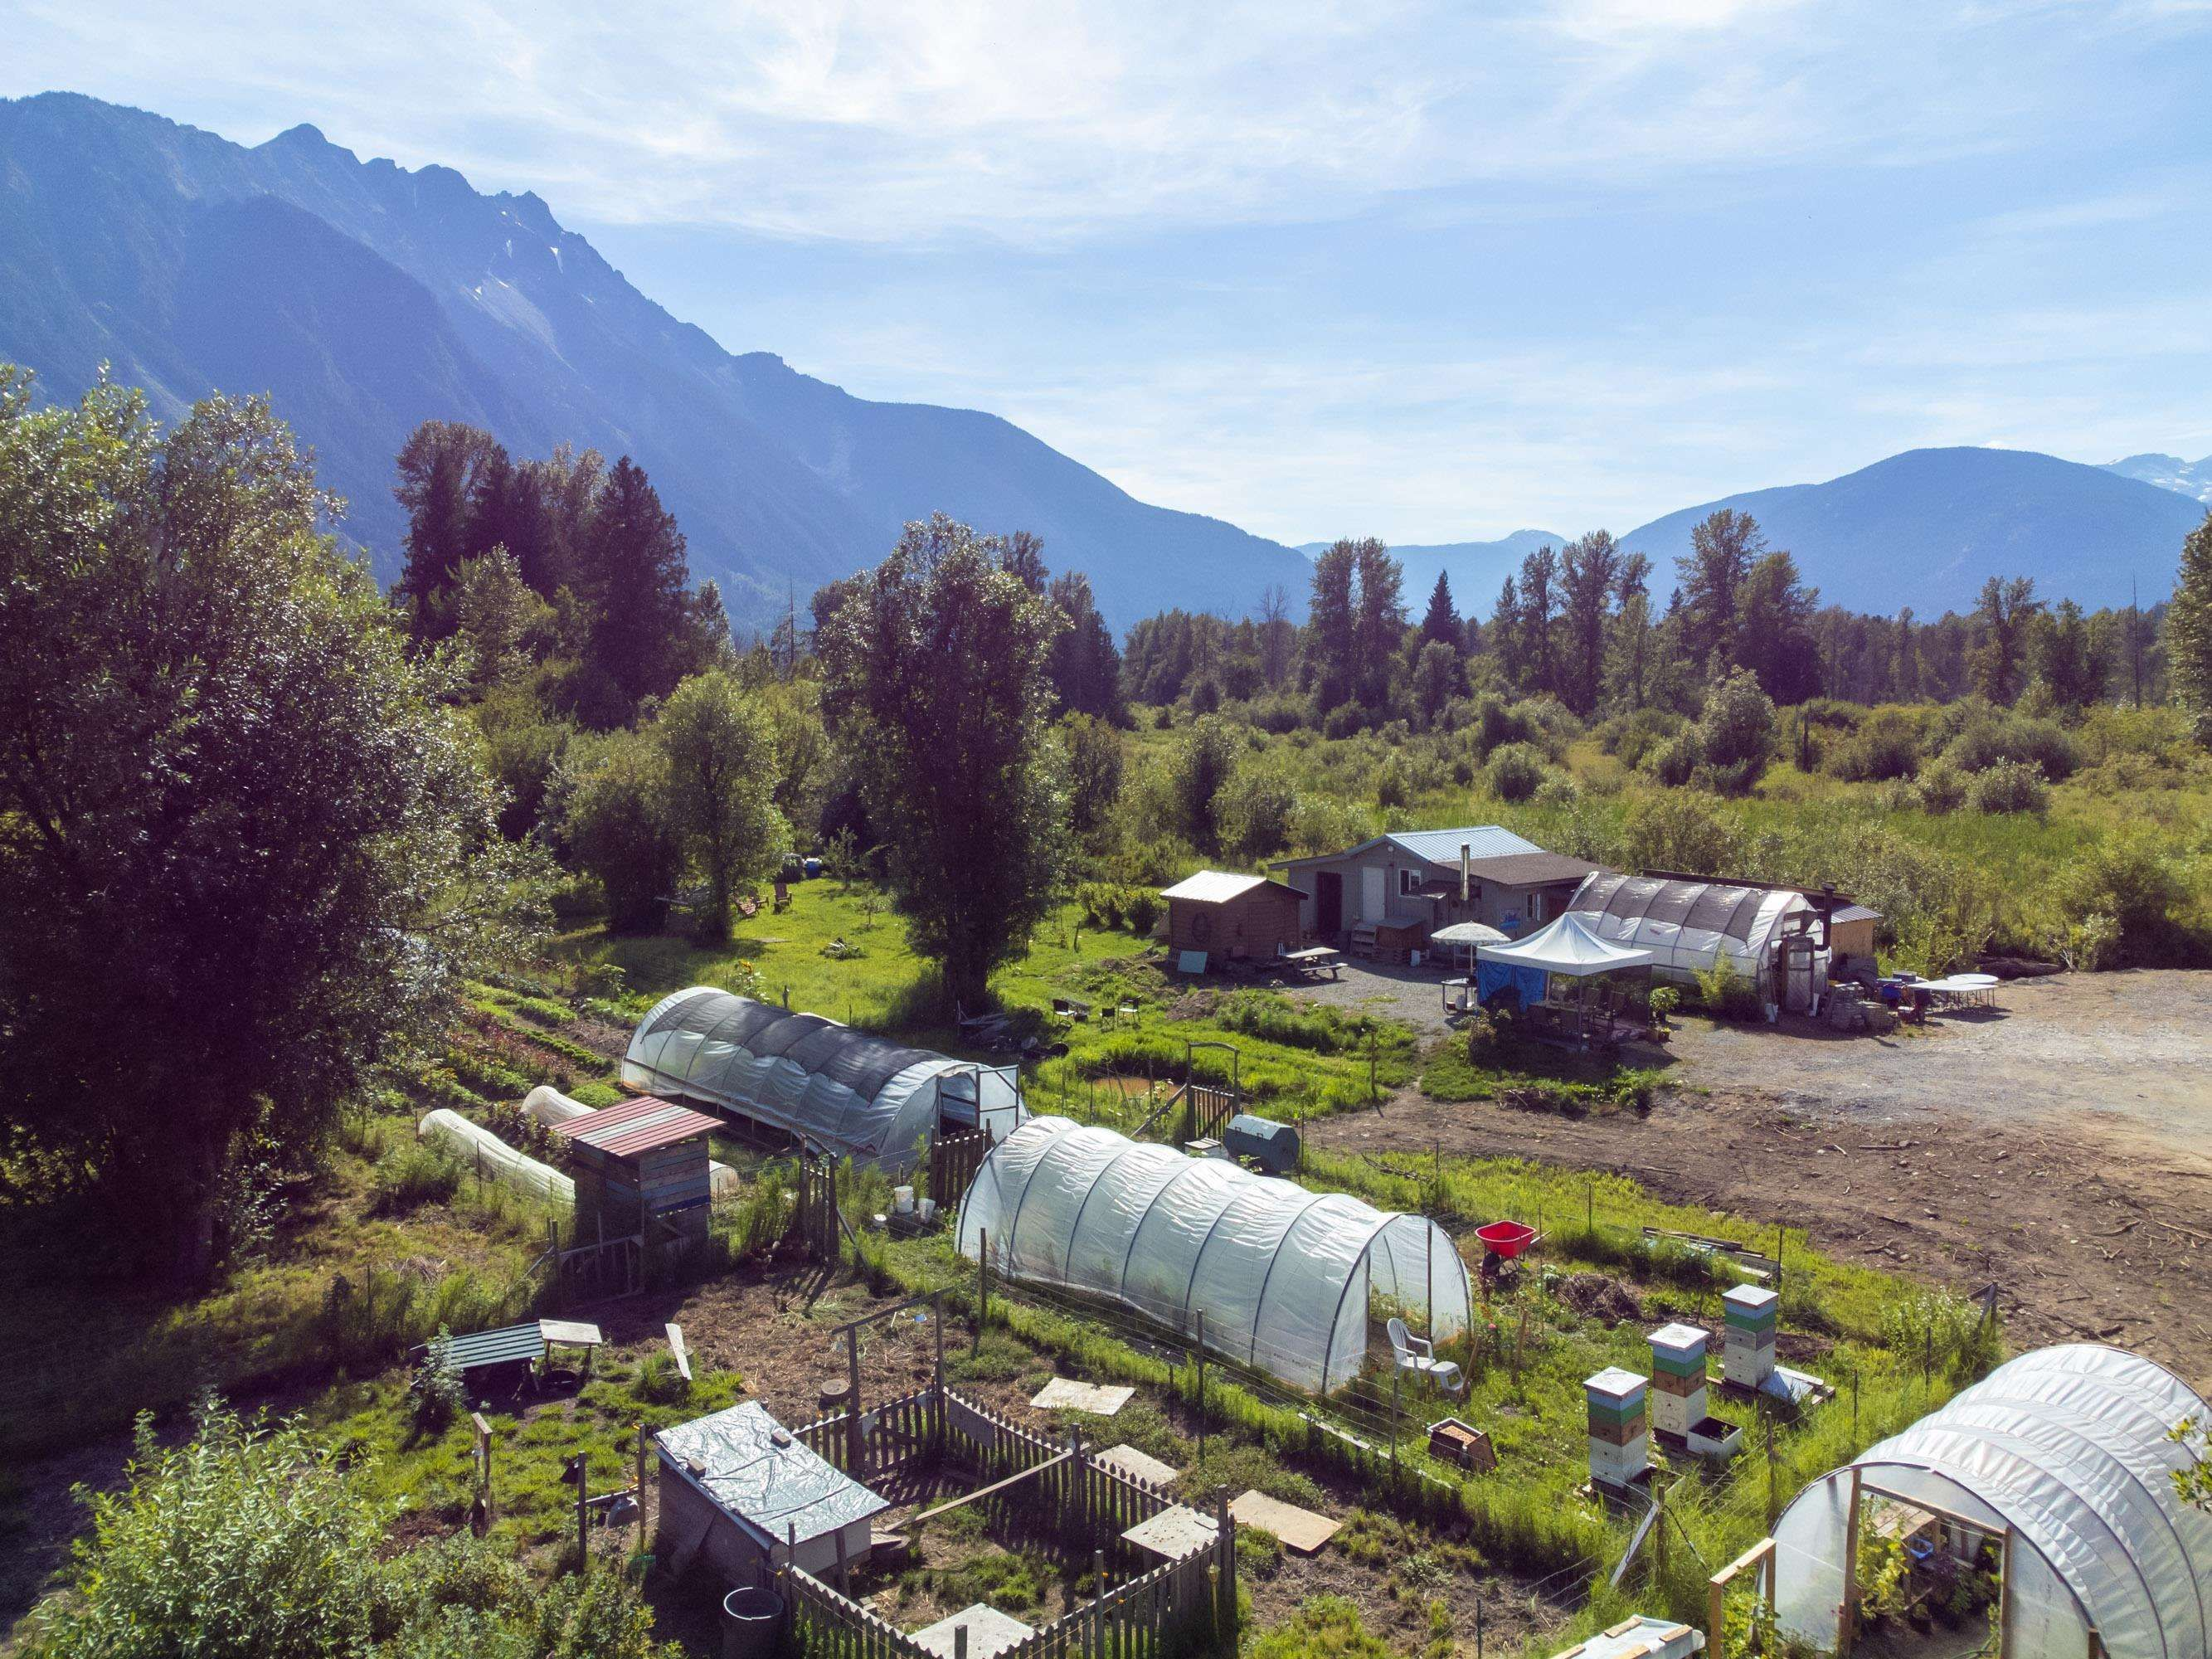 Main Photo: 2162 HIGHWAY 99 in Pemberton: Mount Currie House for sale : MLS®# R2614470